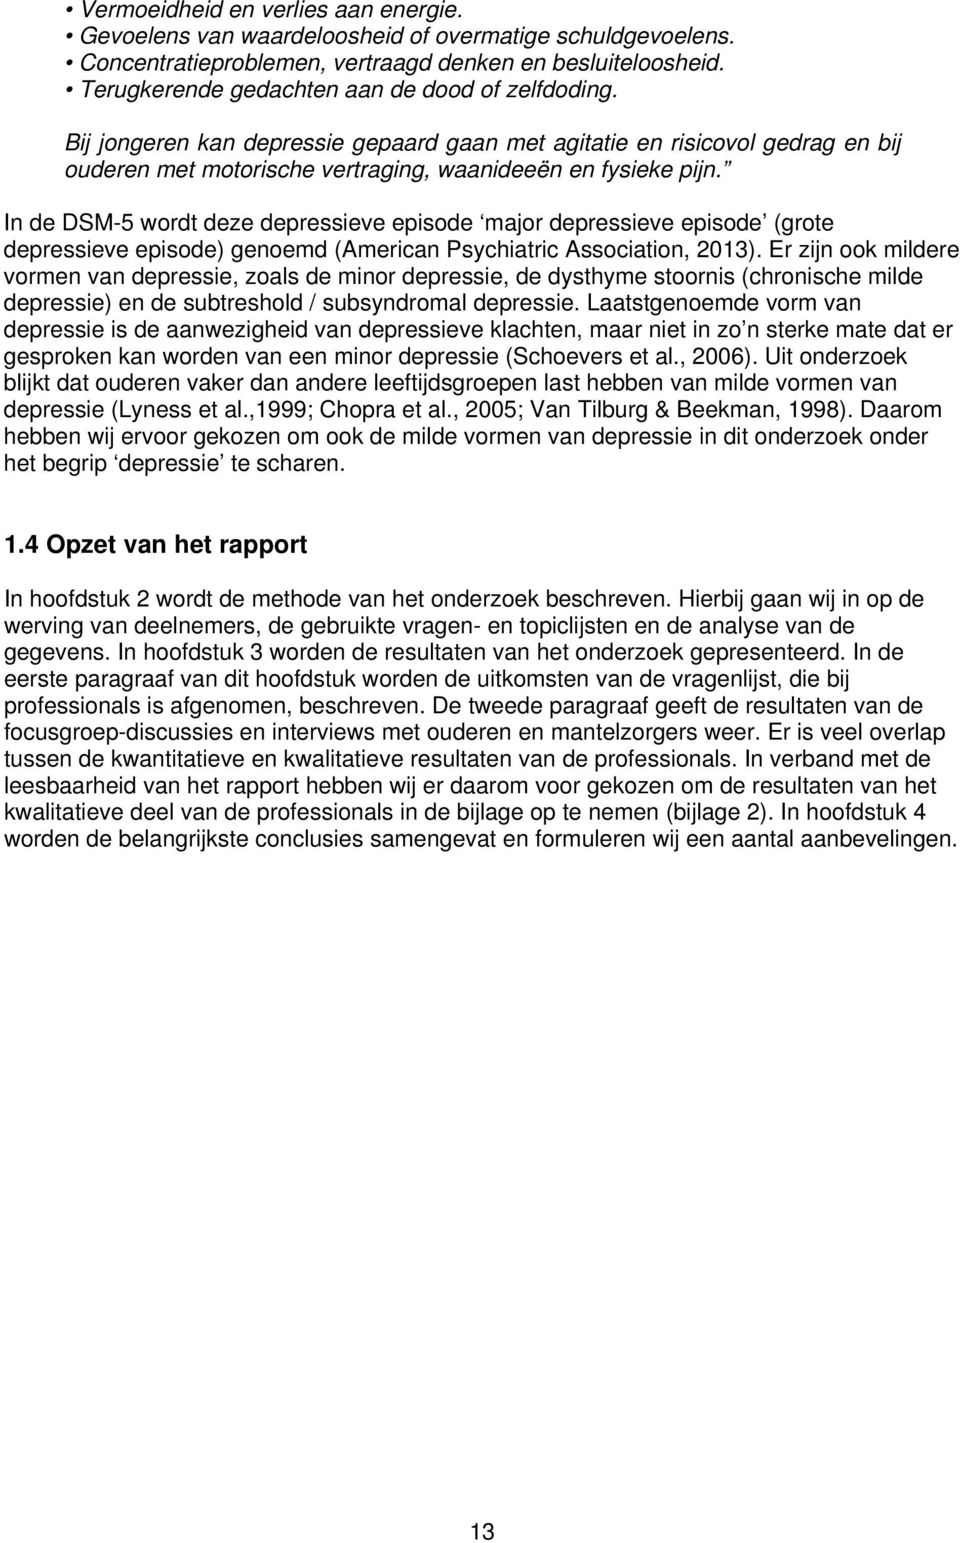 In de DSM-5 wordt deze depressieve episode major depressieve episode (grote depressieve episode) genoemd (American Psychiatric Association, 2013).